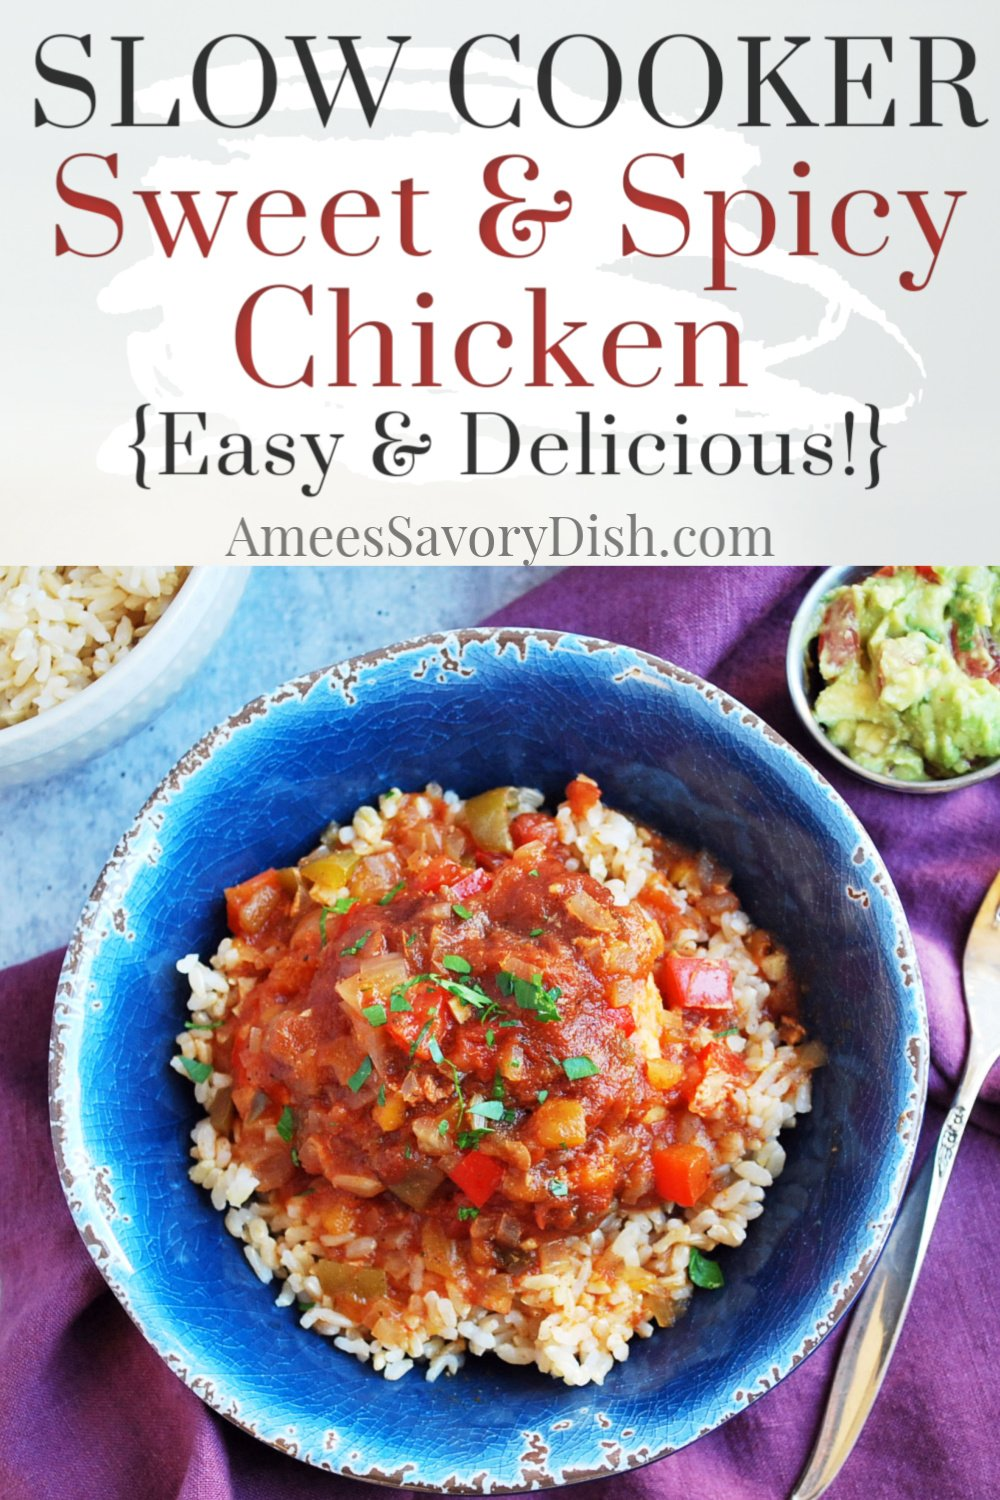 A sweet and spicy Crockpot chicken recipe made with chunky salsa, all-fruit preserves, peppers, herbs, and spices for a simple and delicious weeknight meal. #slowcookerchicken #crockpotchicken #easychickenrecipe #chickenrecipe #mexicanchicken via @Ameecooks